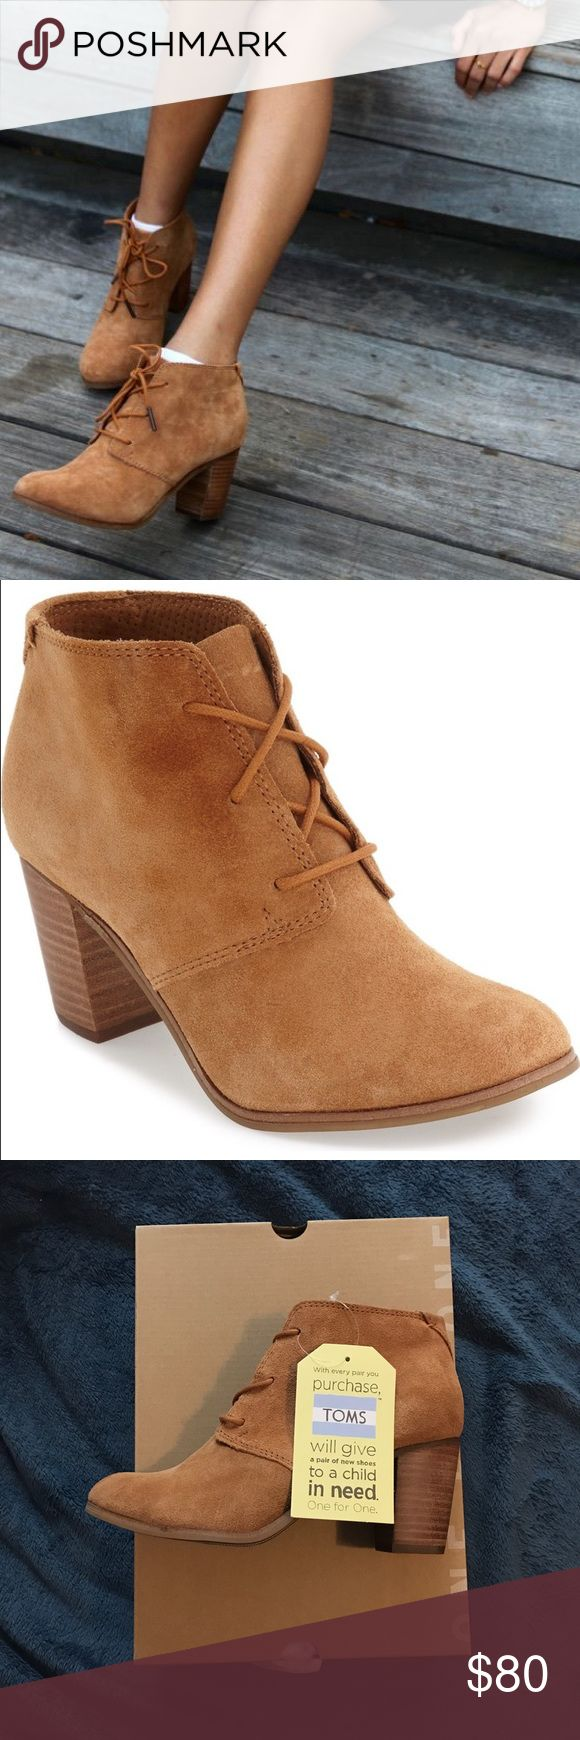 TOMS Lunata Lace Up Booties Brand new with tags! Super cute and they're a good neutral color that goes with anything! I'm always open to reasonable offers! TOMS Shoes Ankle Boots & Booties